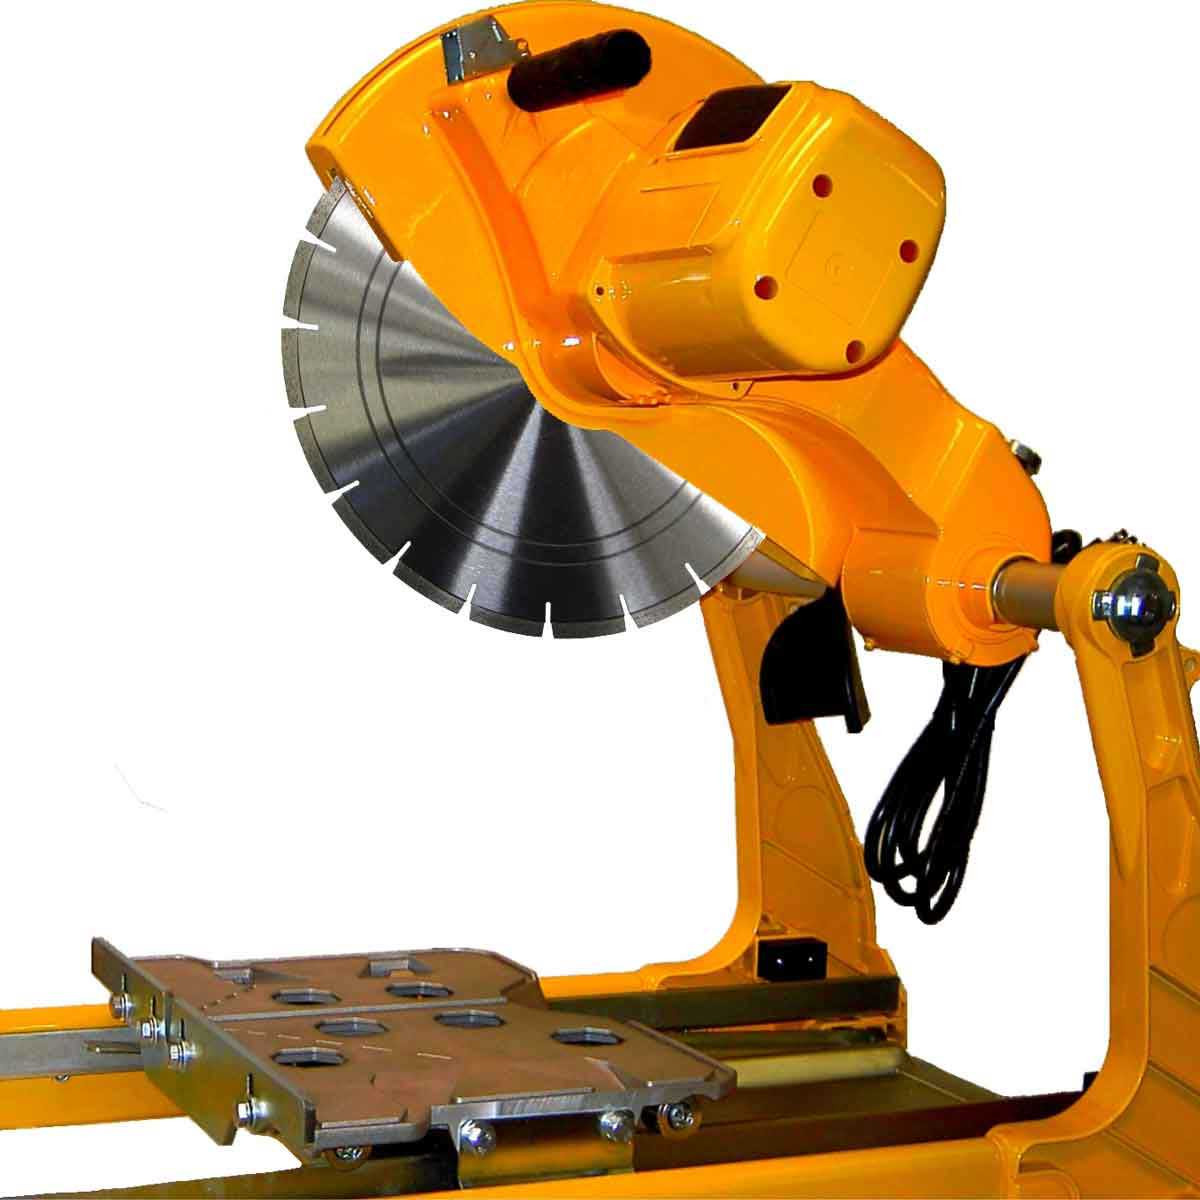 multiquip compact 14in masonry saw